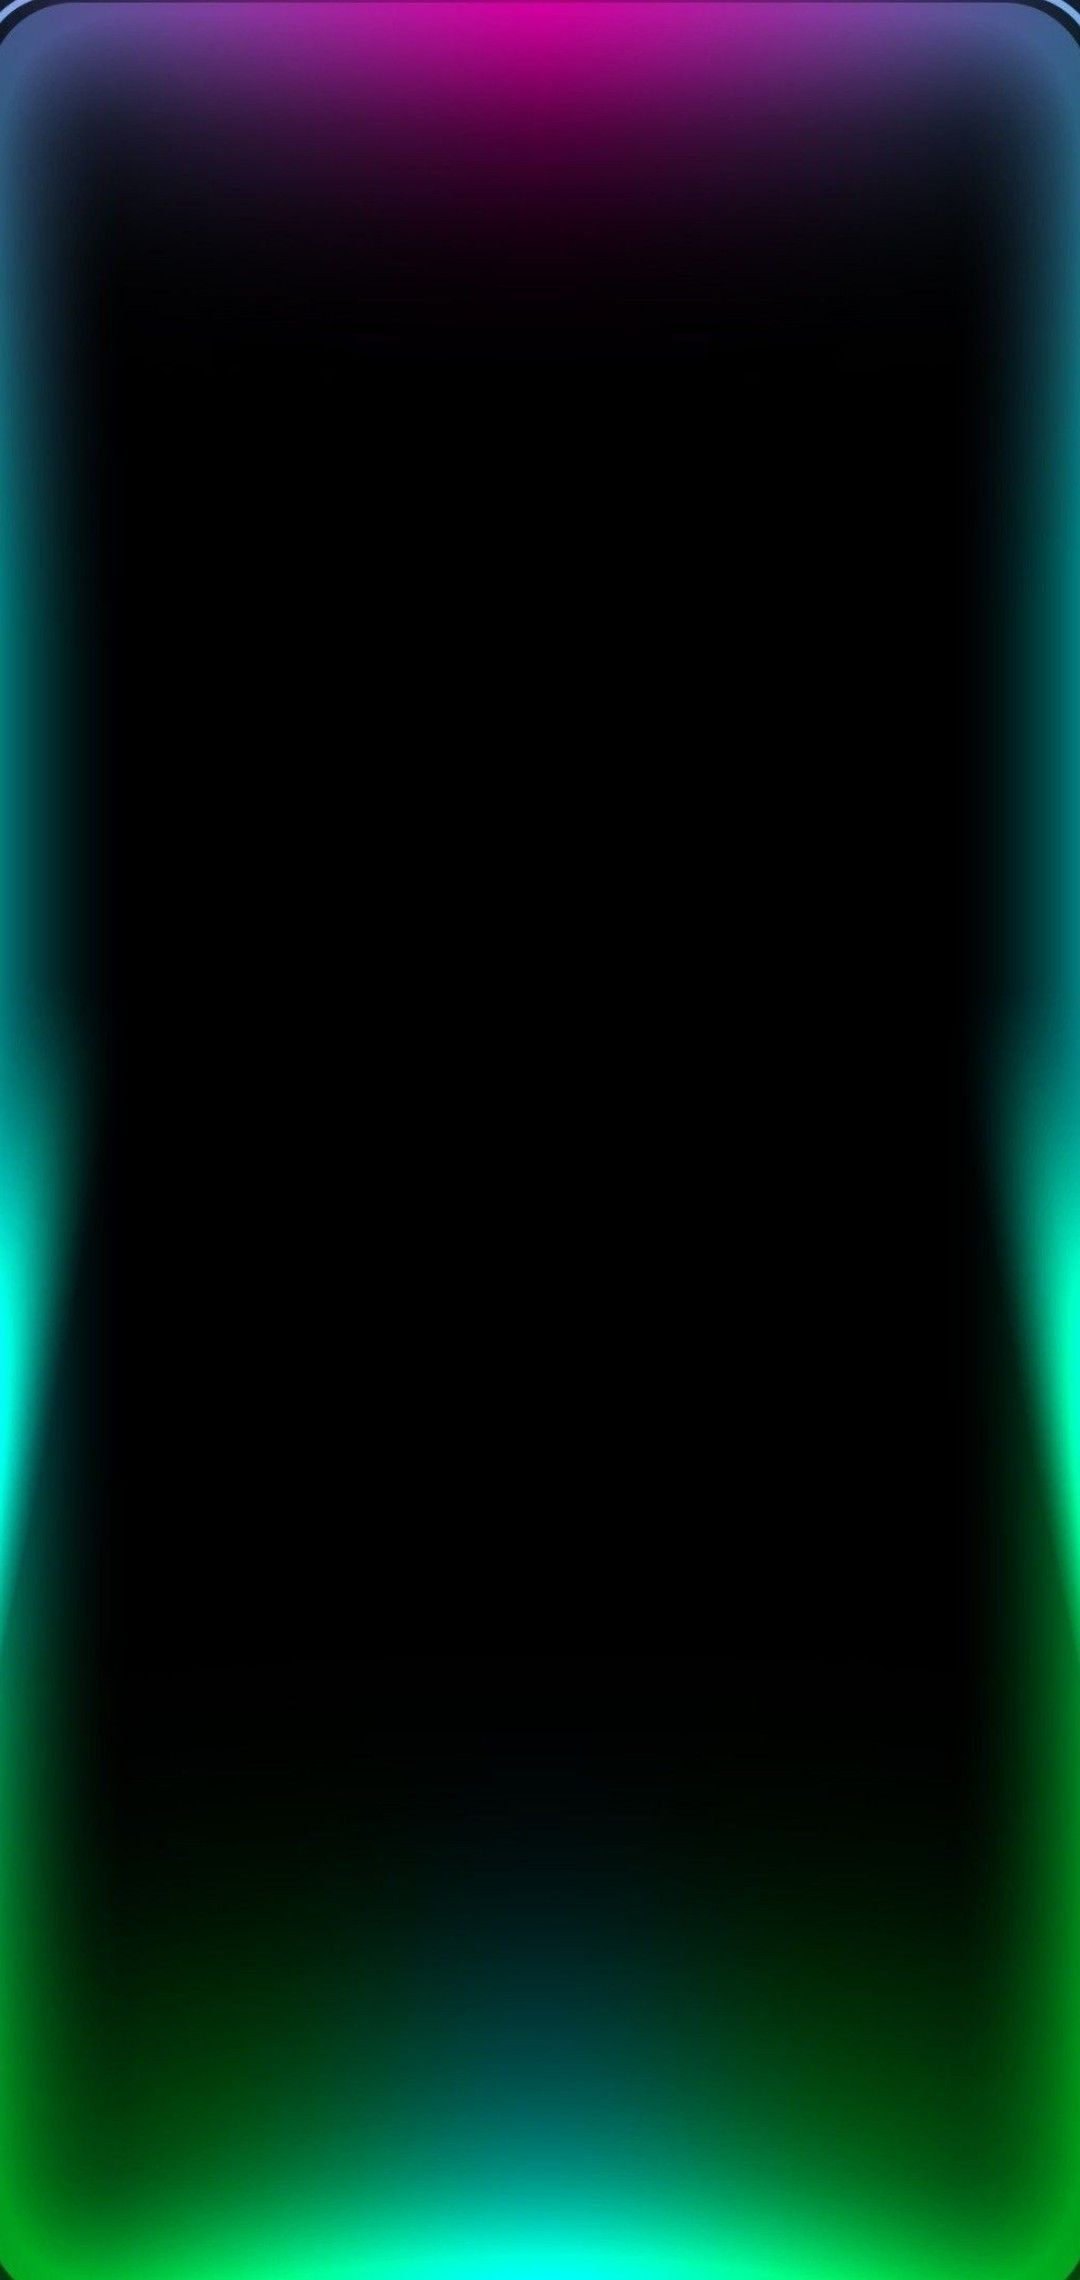 Frame Border Rainbow Light For 1080x2280 Wallpaper Phone Wallpaper Patterns Abstract Iphone Wallpaper Neon Wallpaper